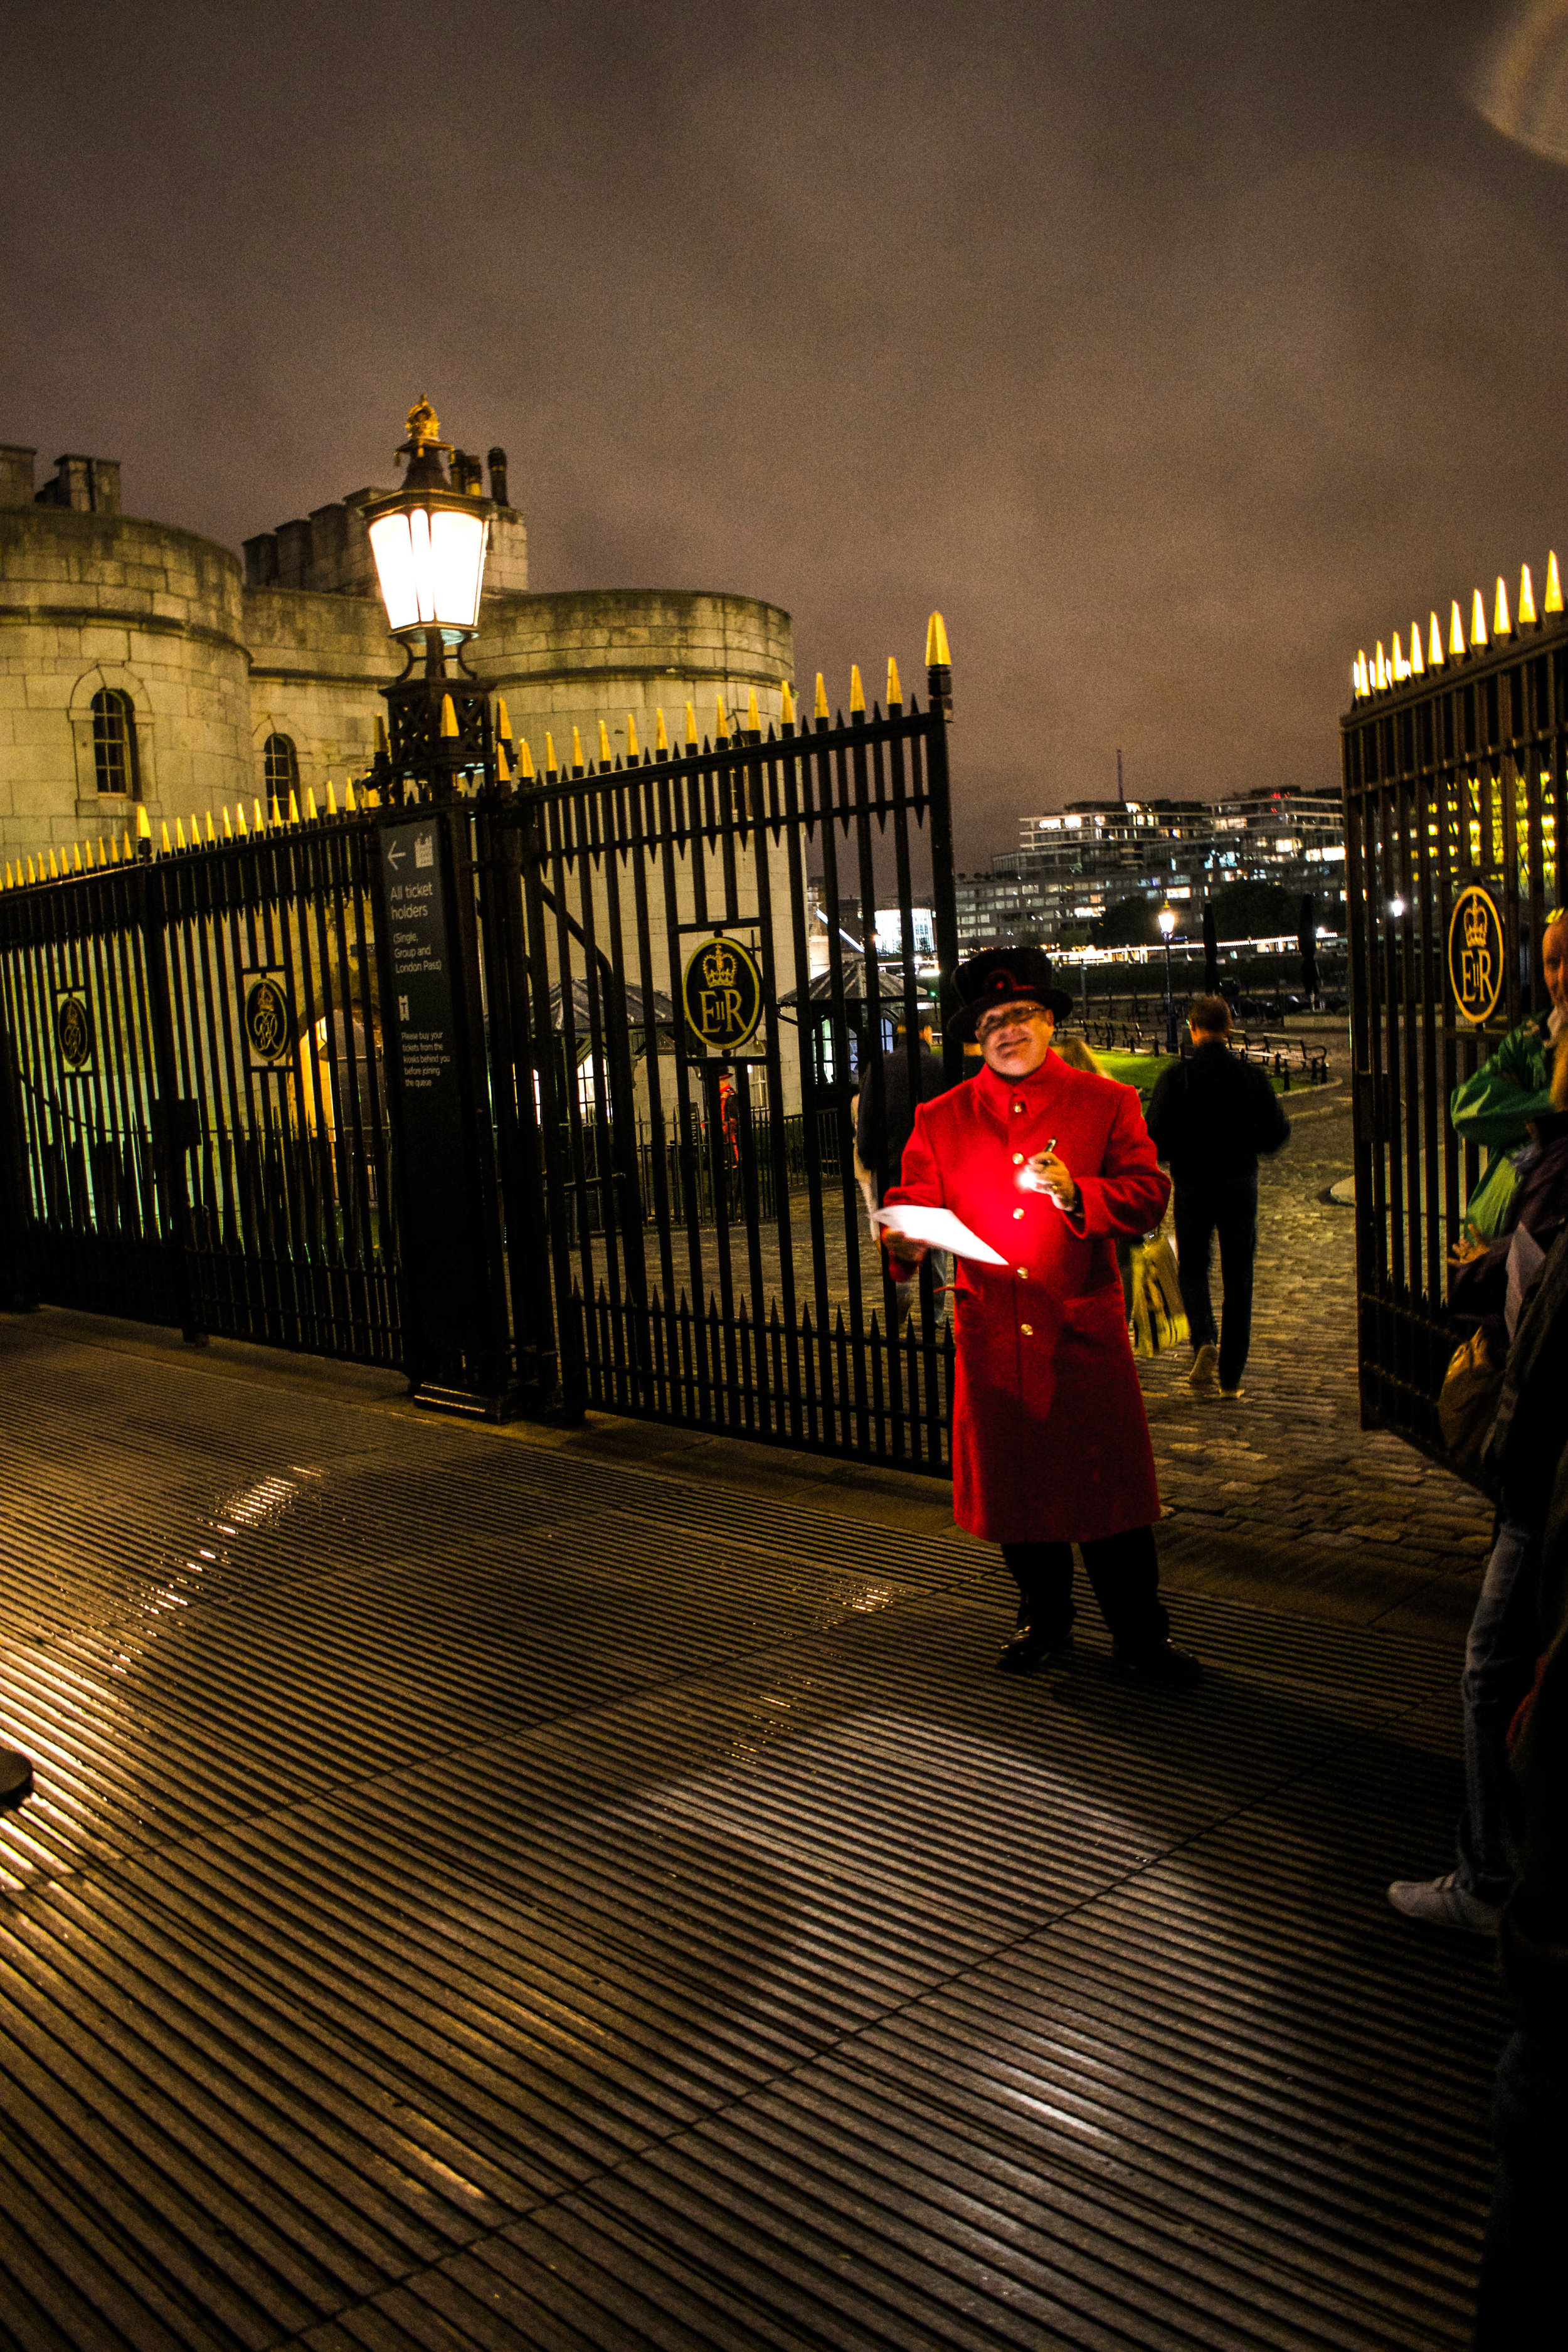 9.Tower of London - *Get tickets for the Ceremony of the Keys!